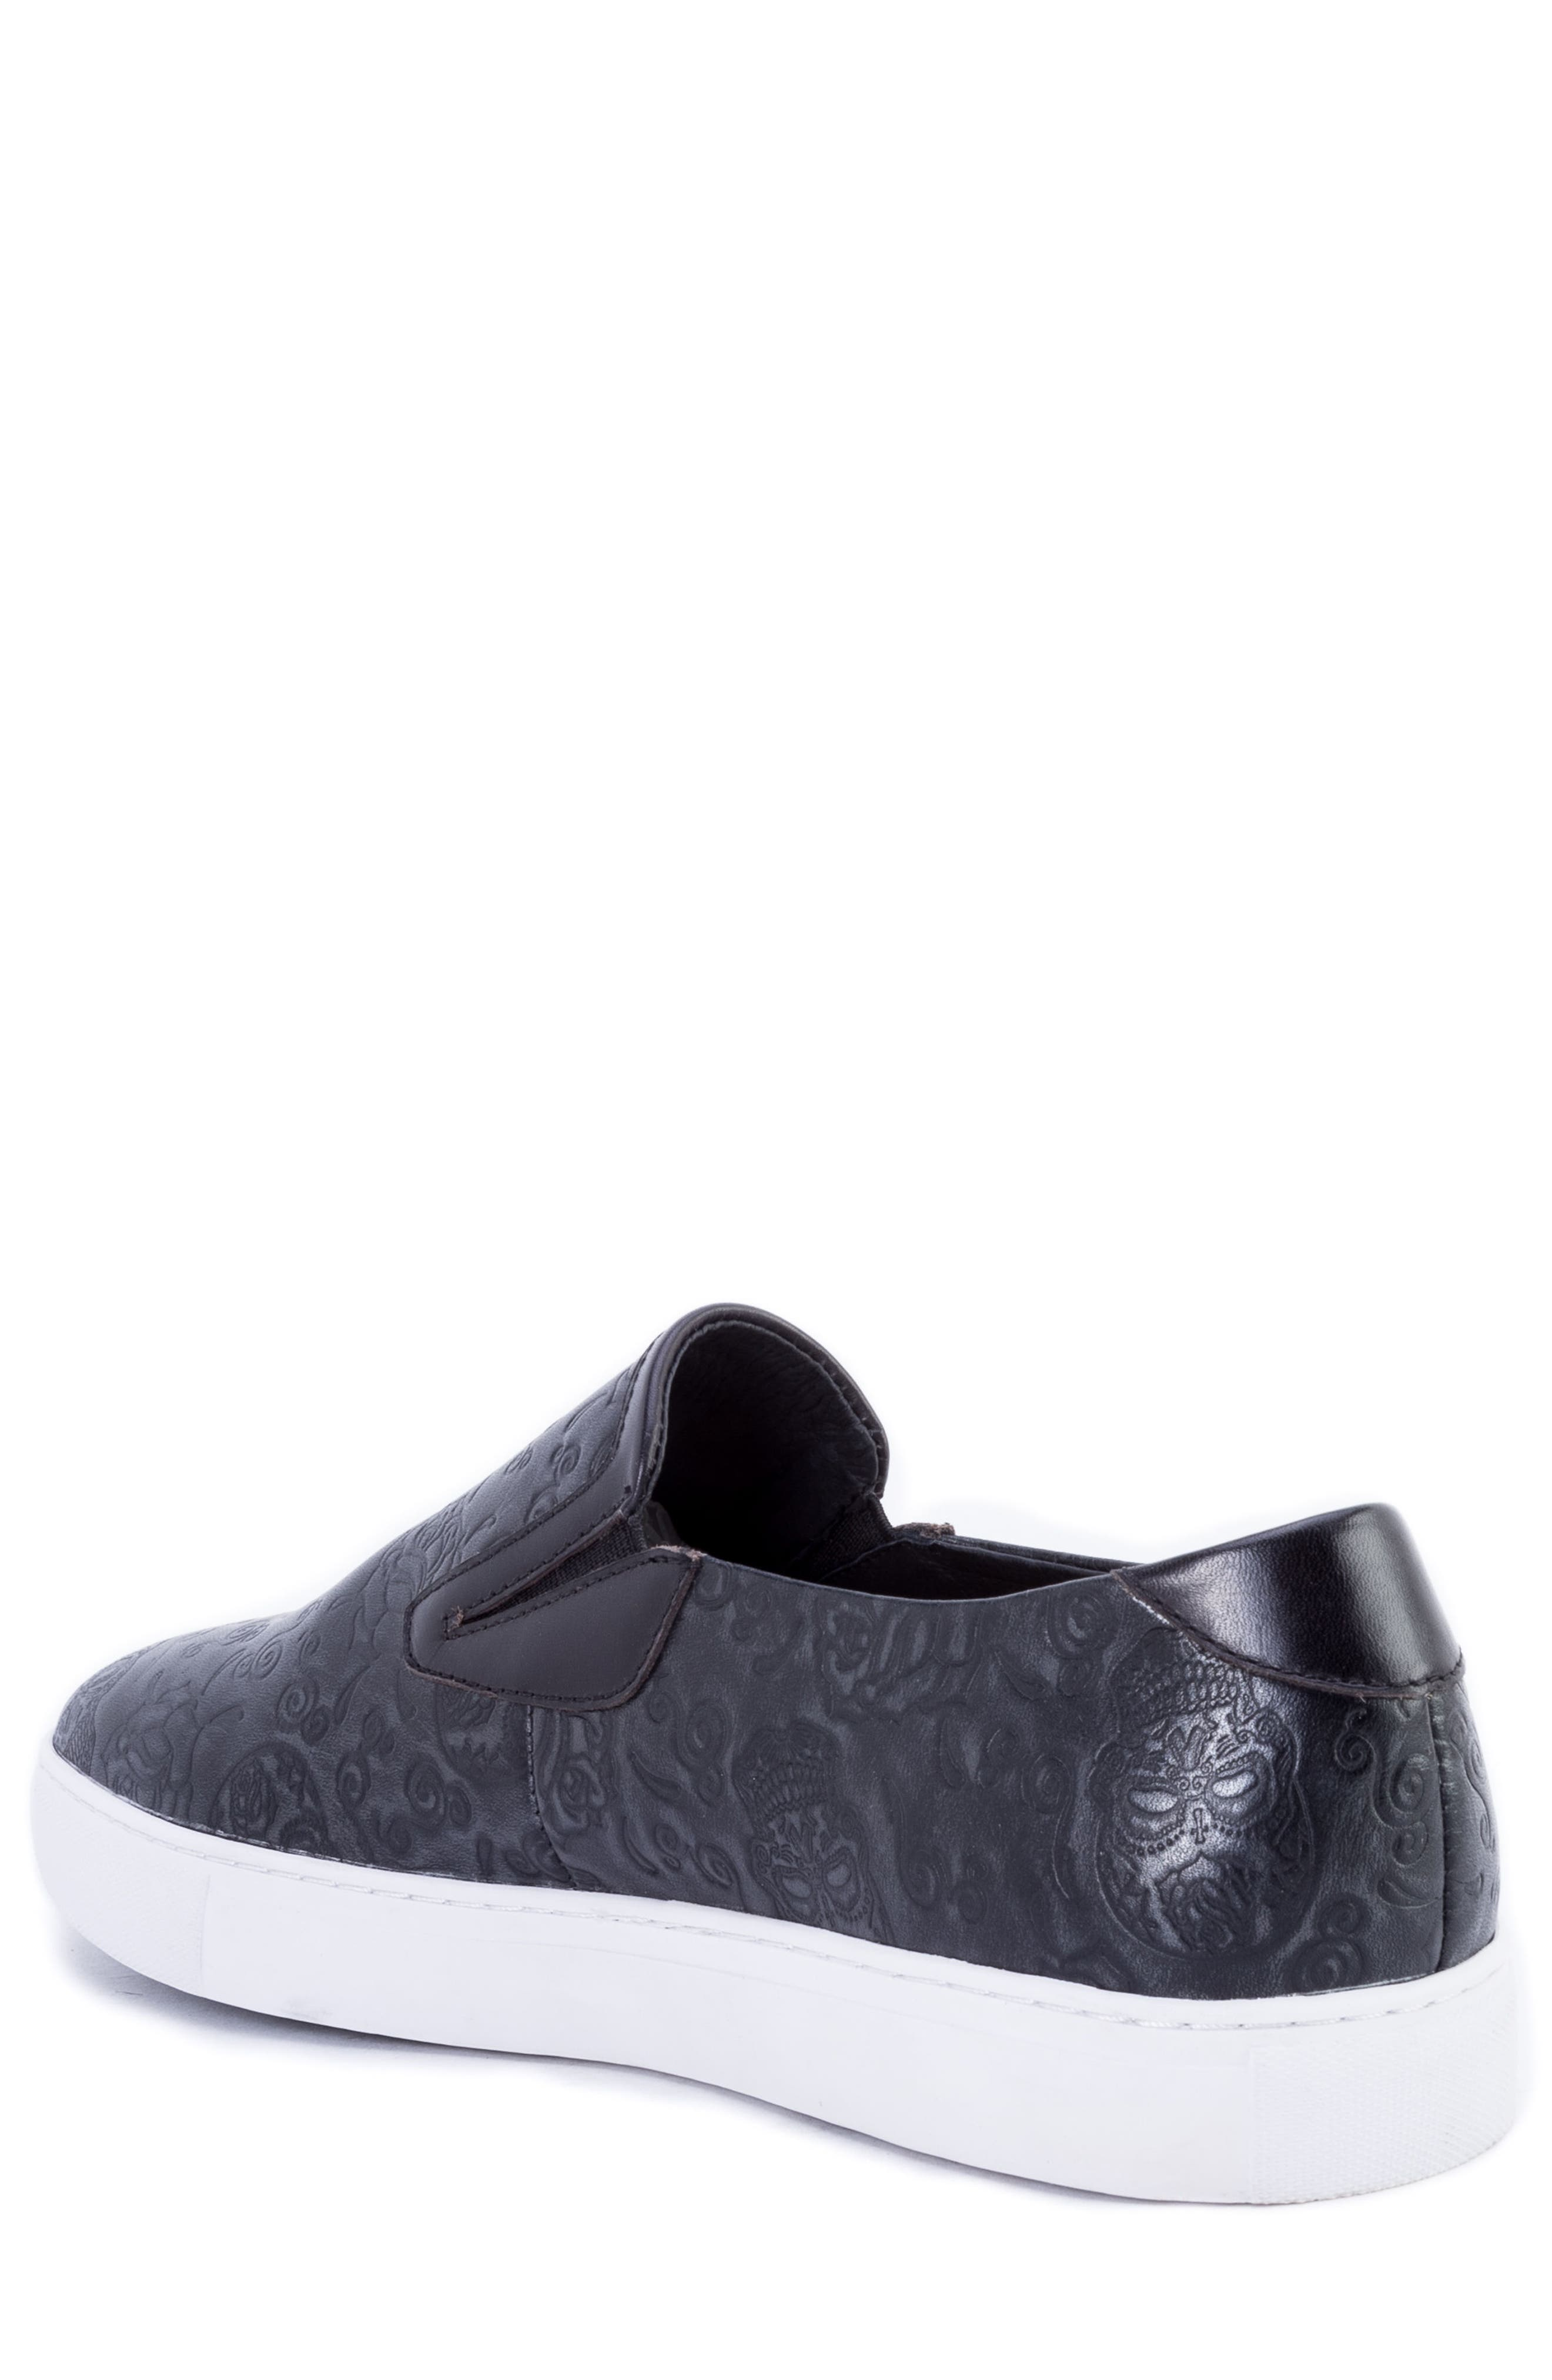 Baxter Embossed Slip-On Sneaker,                             Alternate thumbnail 2, color,                             BLACK LEATHER